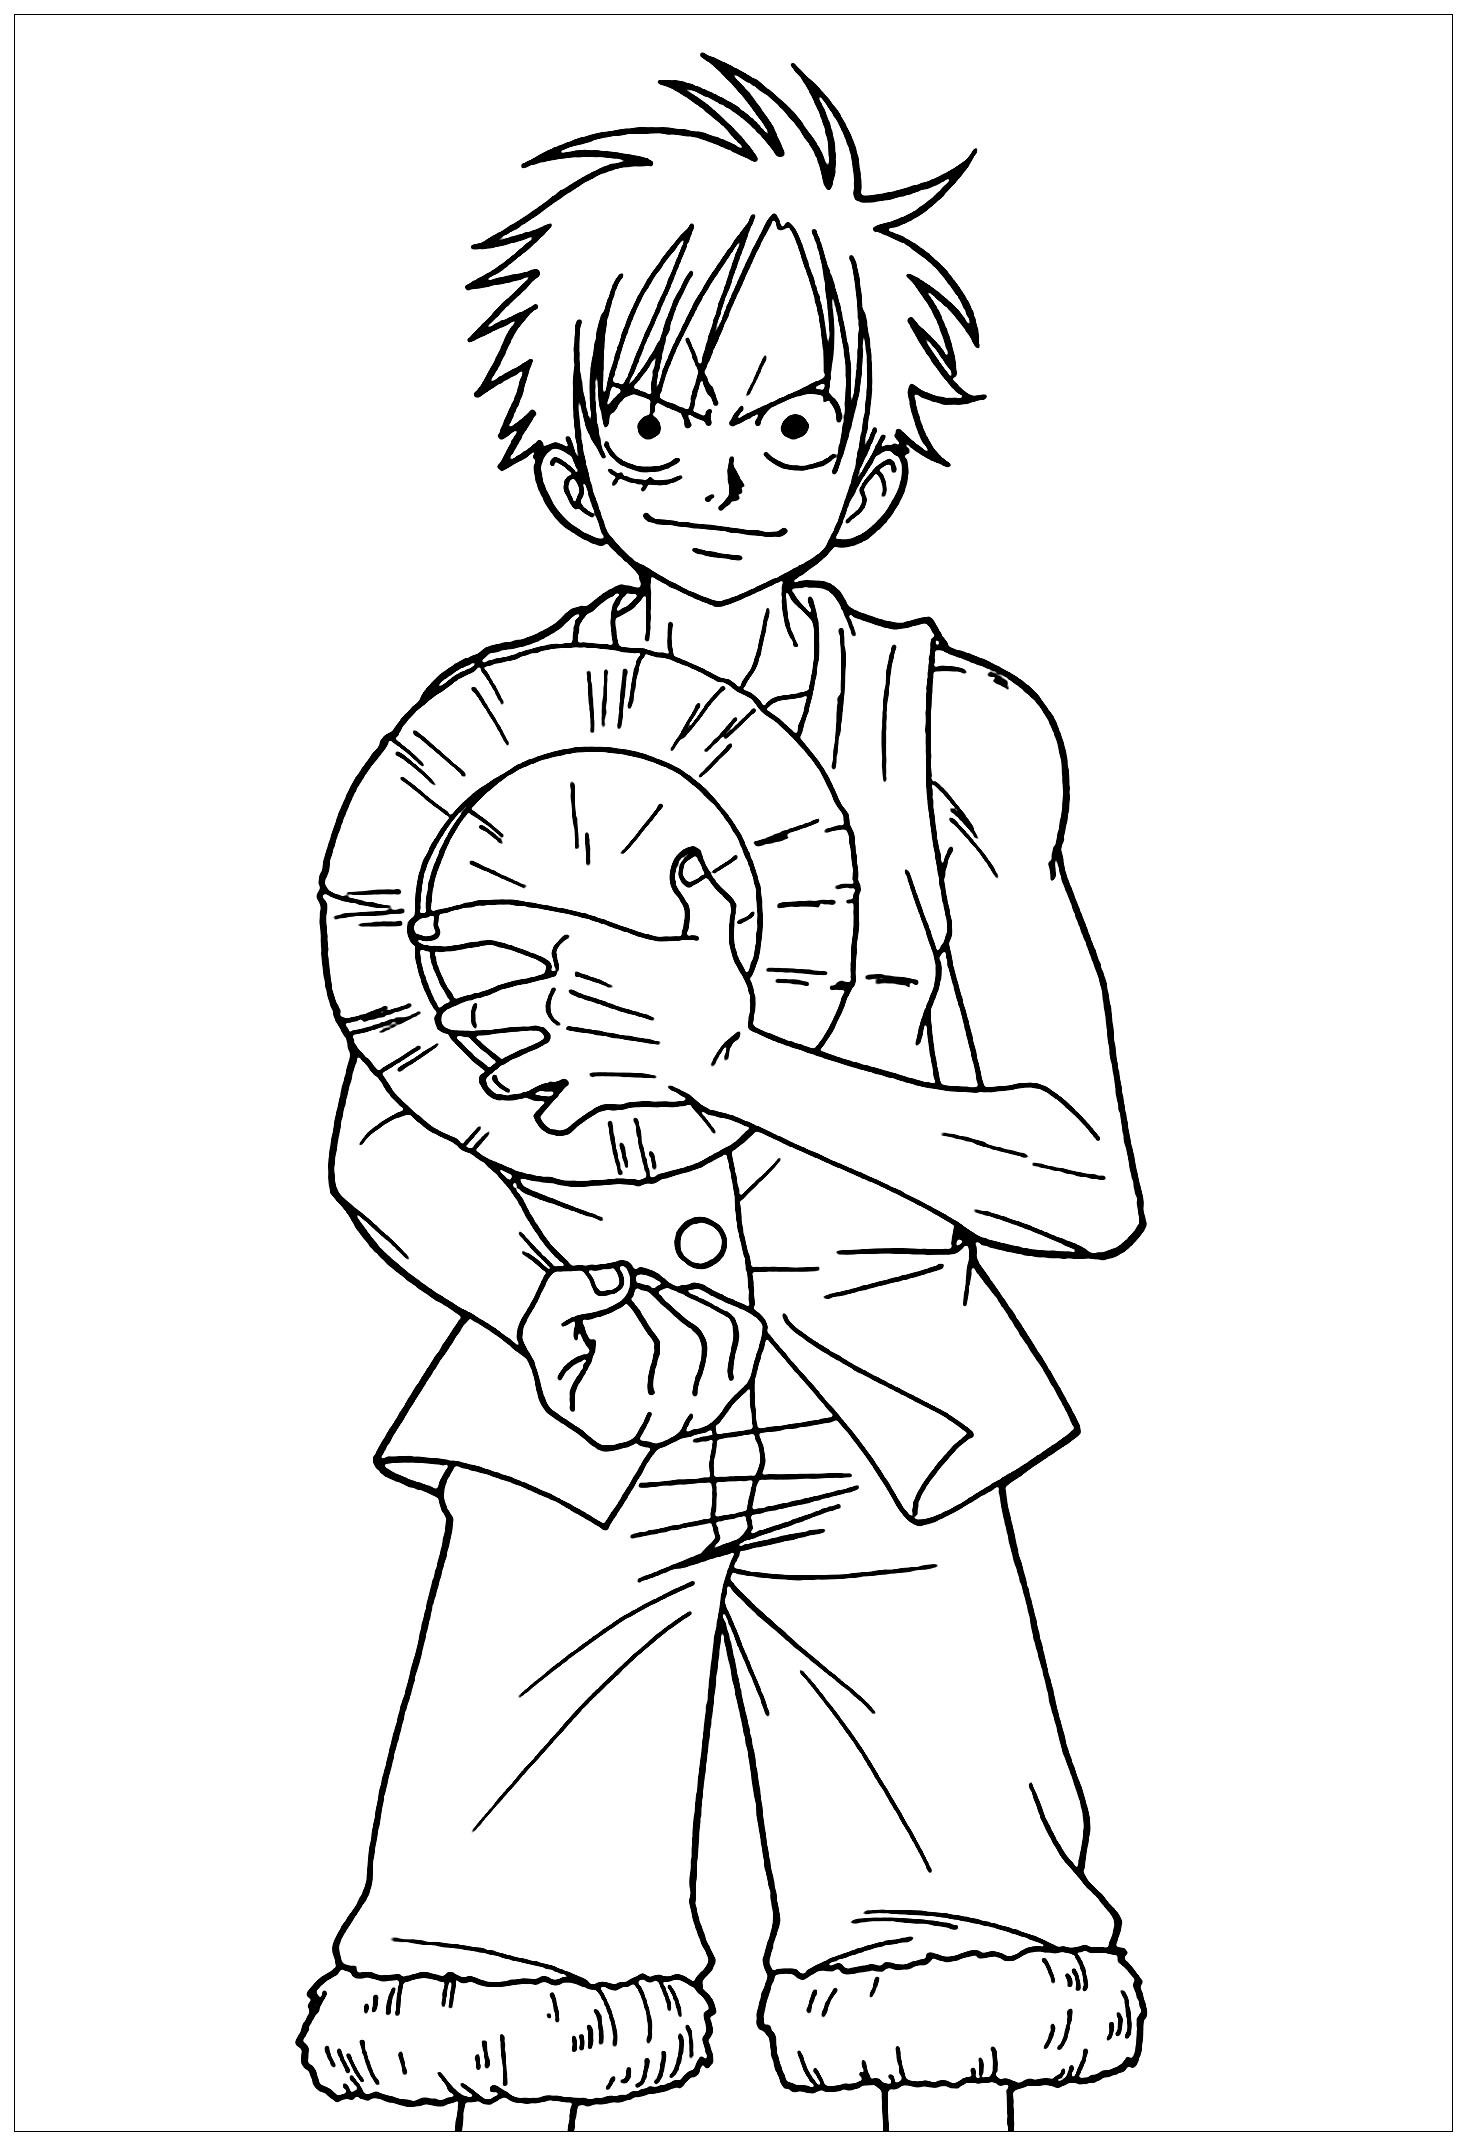 Funny One Piece coloring page for children